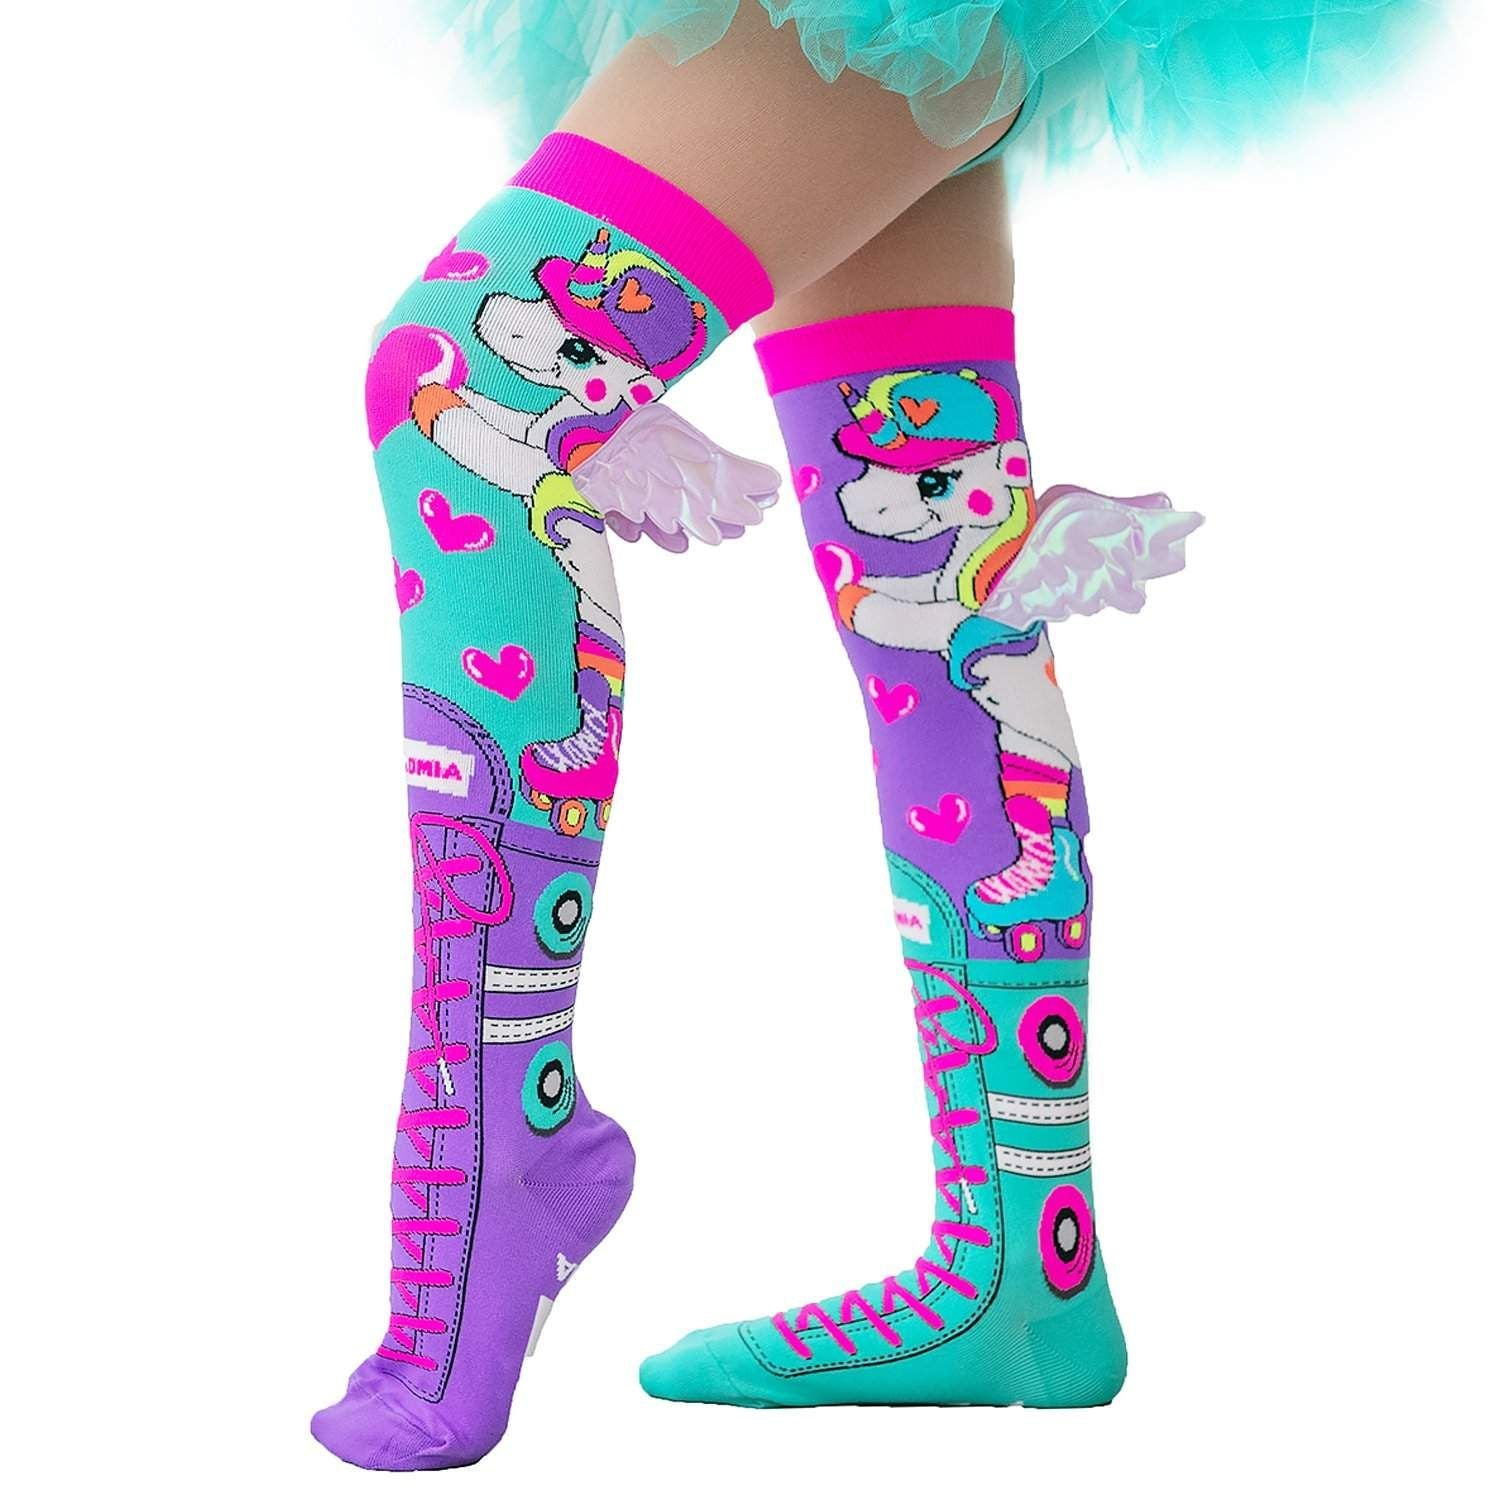 MADMIA SKATERCORN SOCKS WITH WINGS